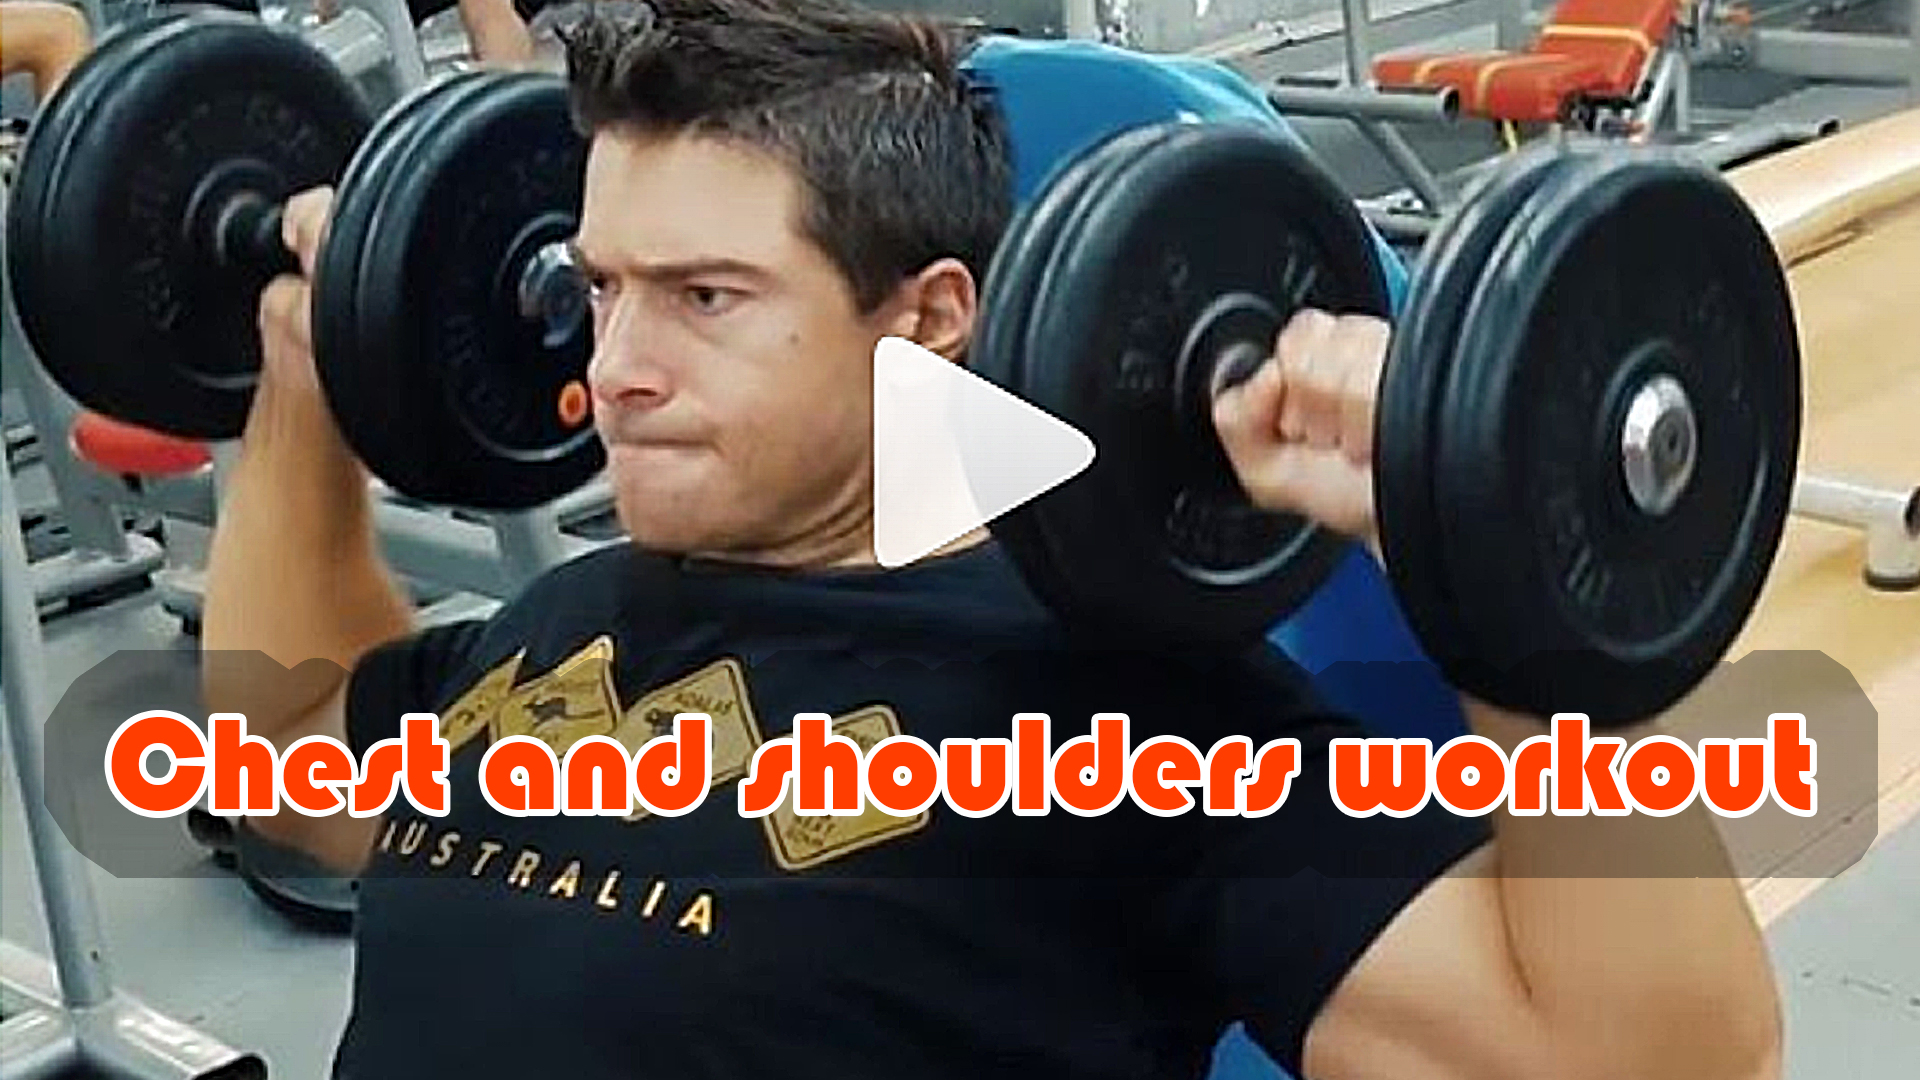 Chest and shoulders workout